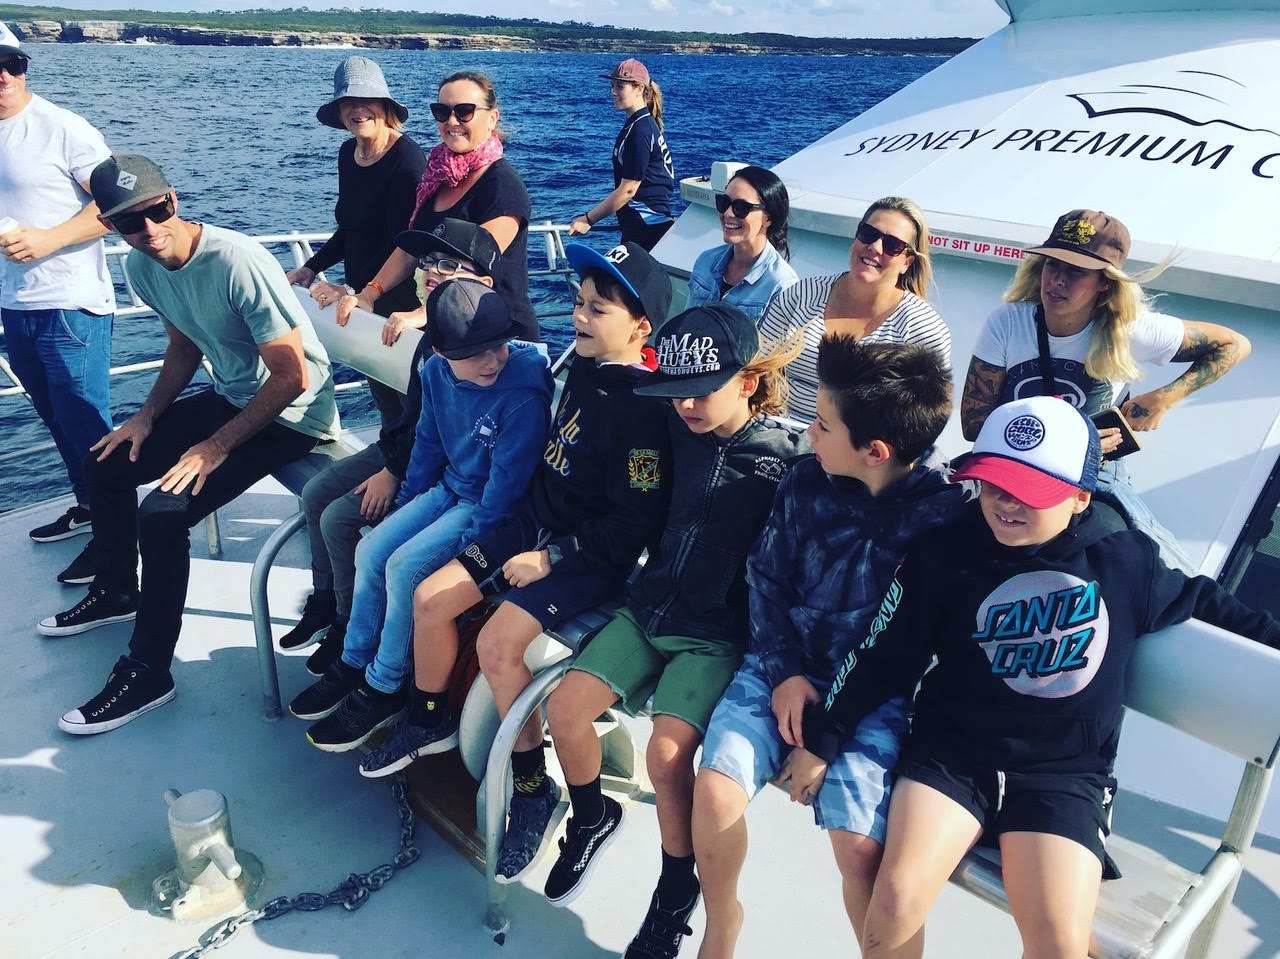 School holiday whale watching trip Cronulla